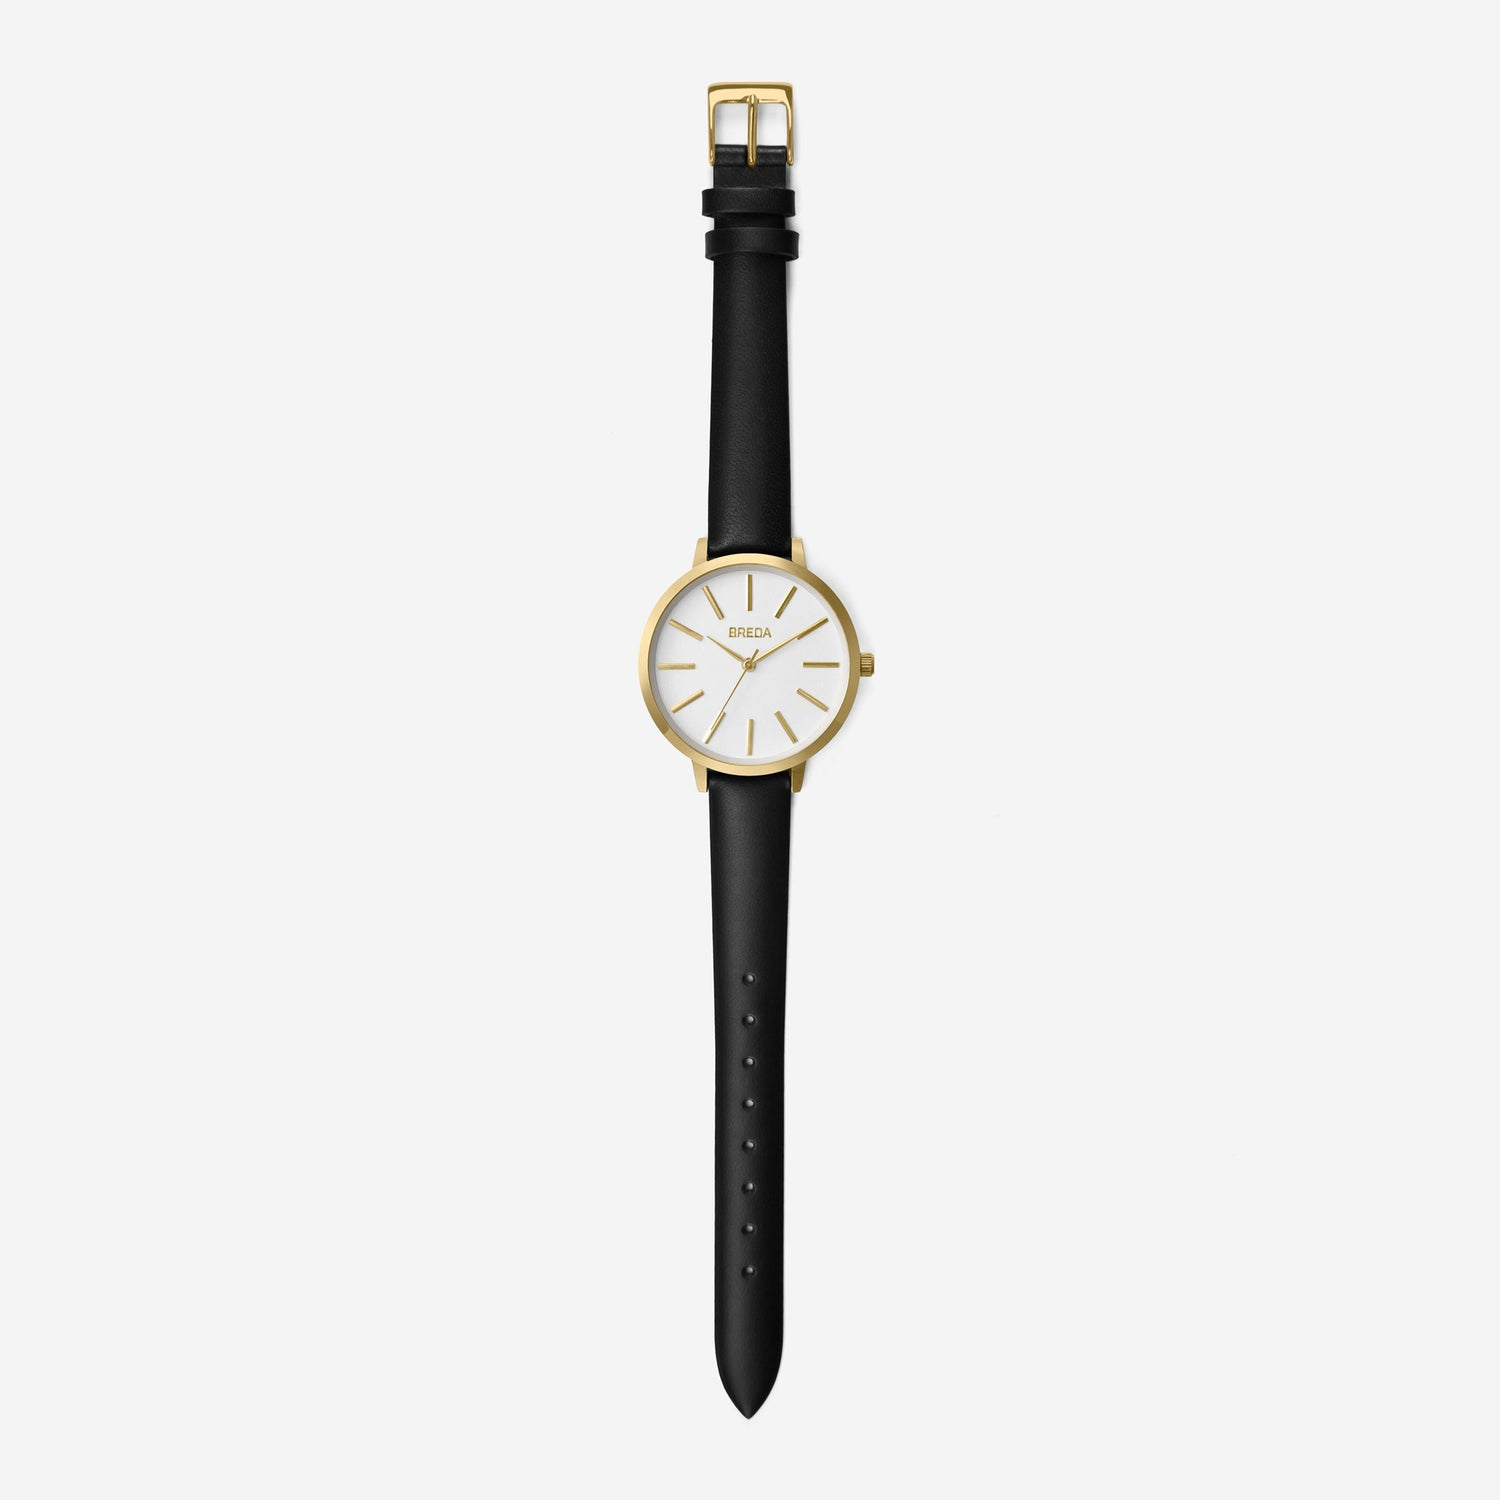 breda-joule-1722a-gold-black-watch-long